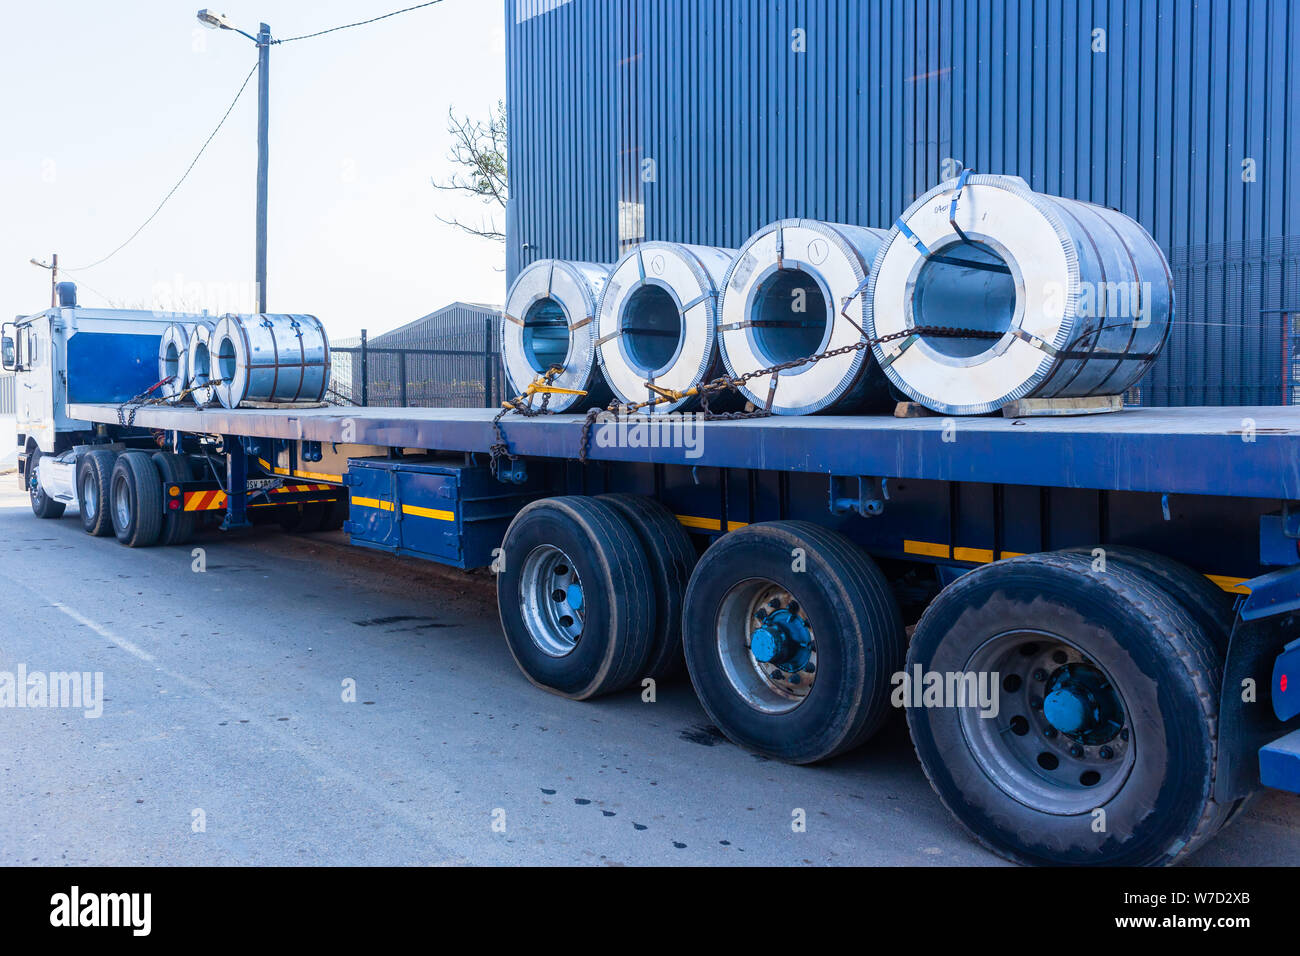 Truck transporting heavy steel sheet rolls secured on trailer from refinery to warehouse for customer manufacturing. Stock Photo